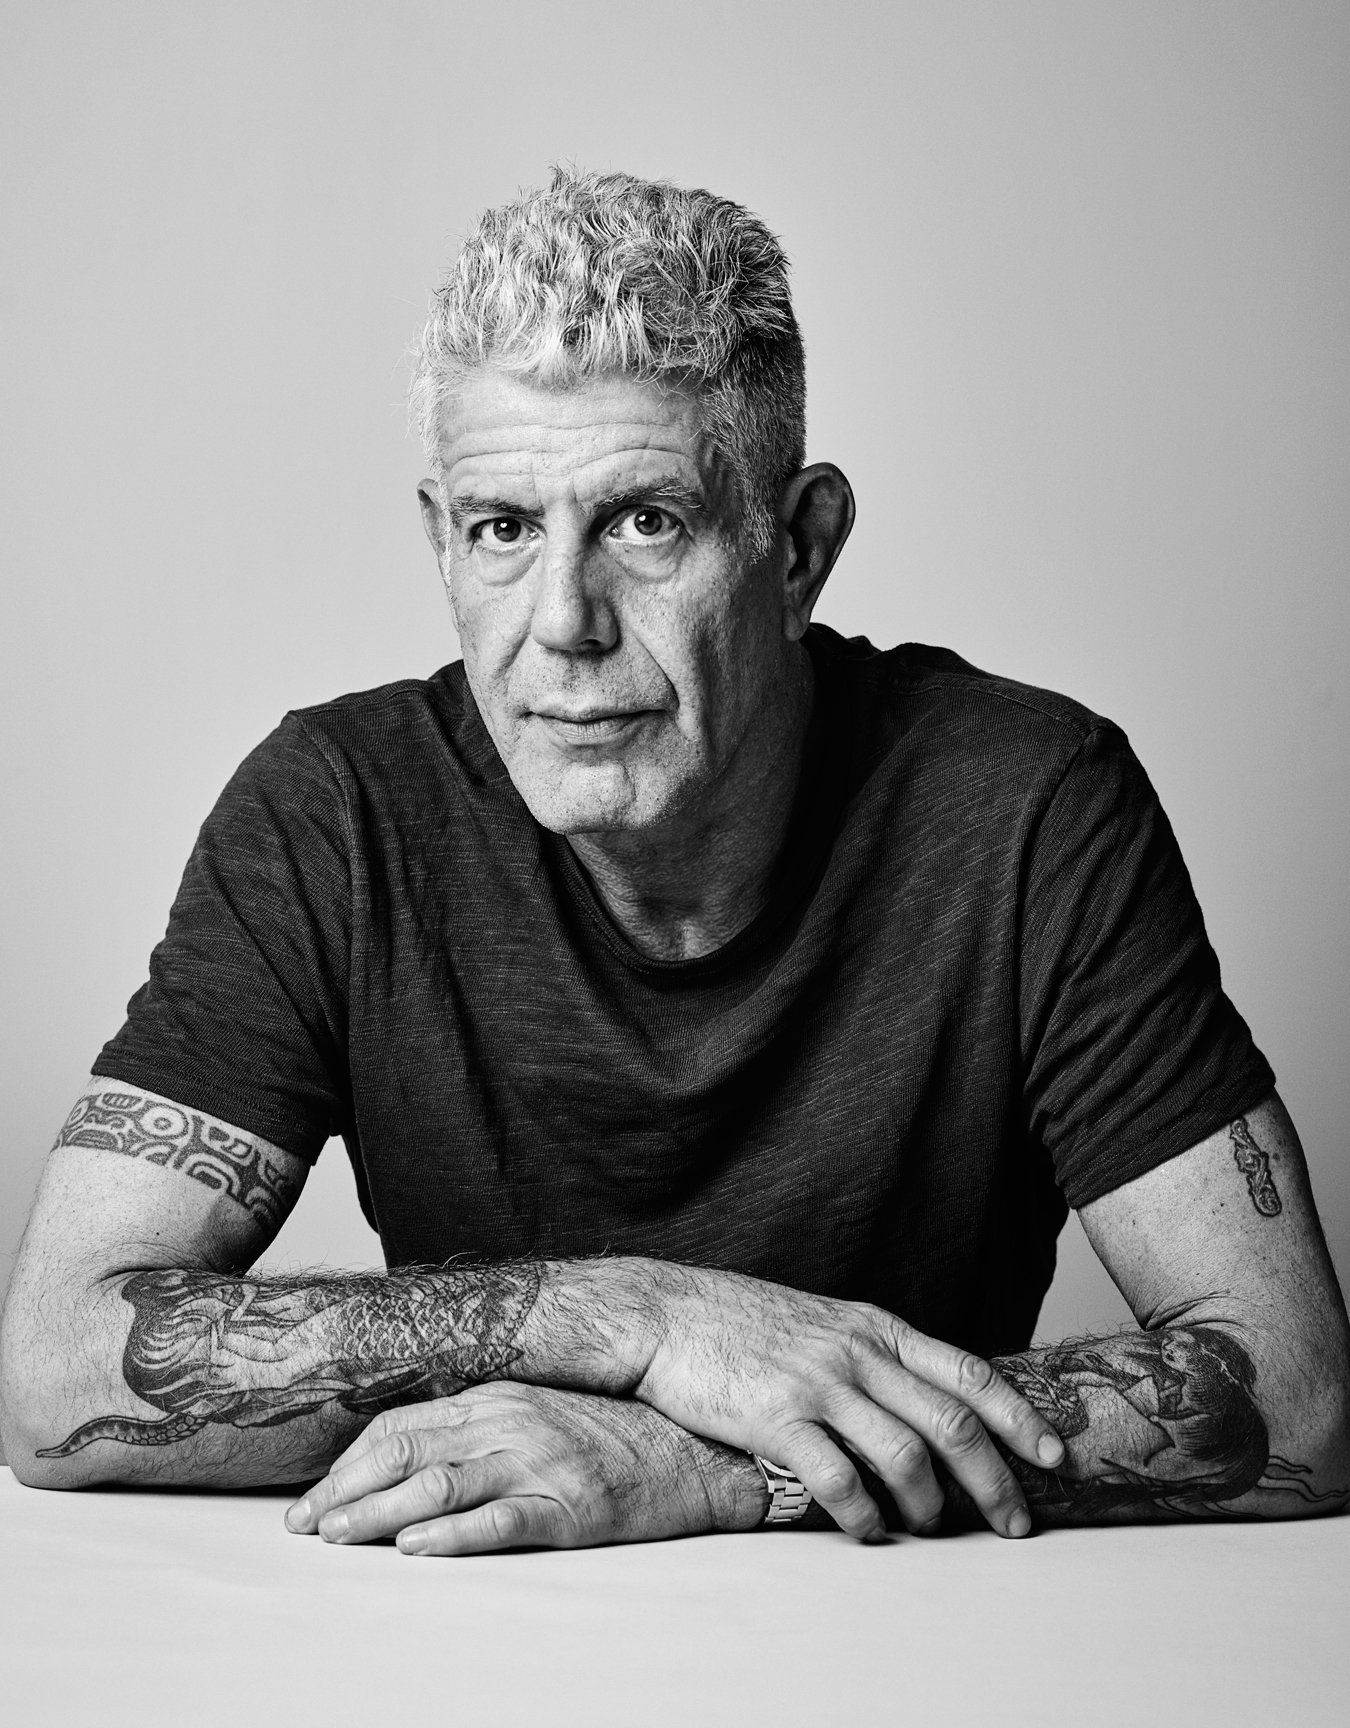 NUVO Autumn 2016: Anthony Bourdain, Chronicle